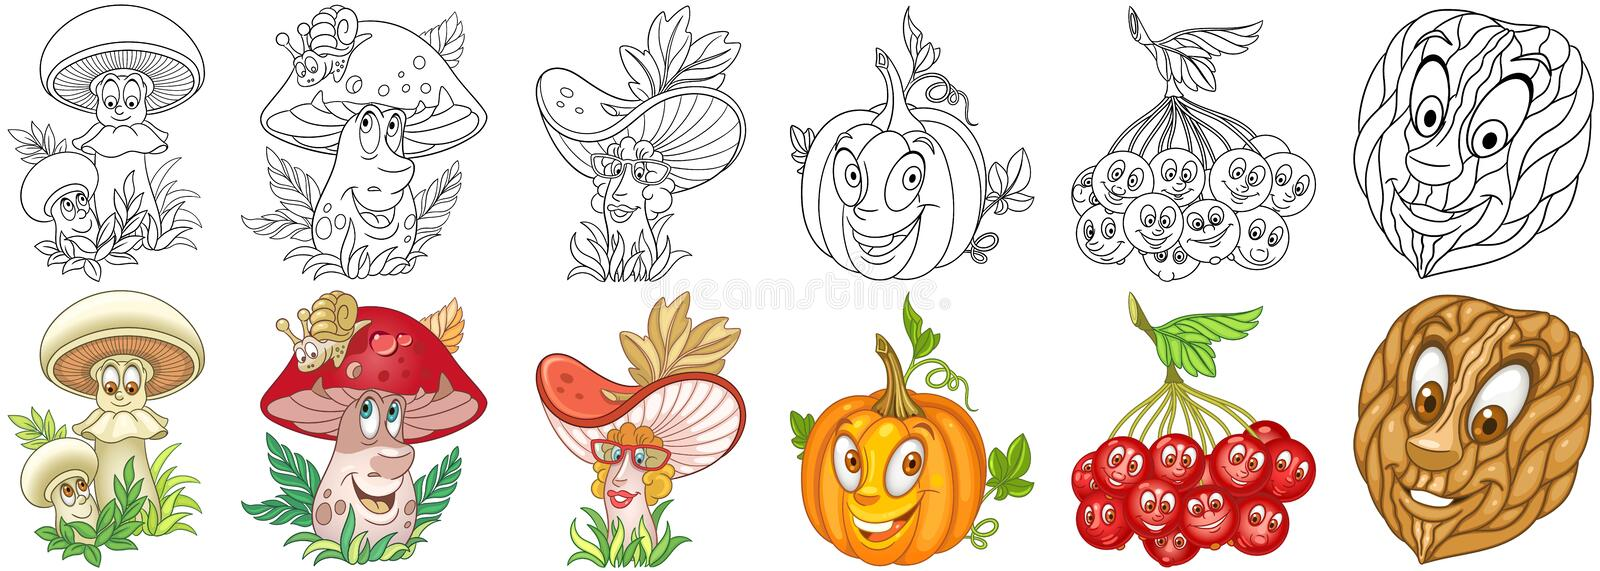 Cartoon Plants set stock photos